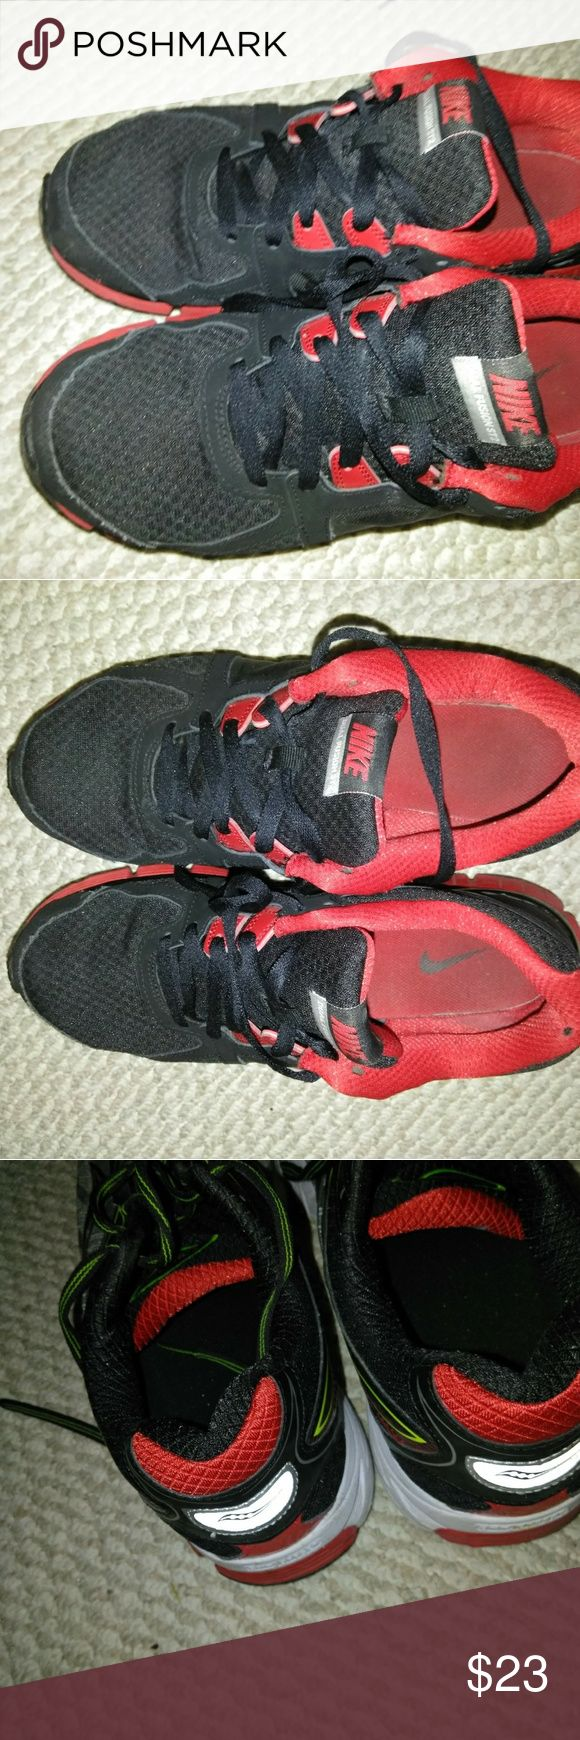 Men's Nike Dual Fusion Shoes Size 11.5 These shoes are in good  pre-owned condition. Nike Shoes Athletic Shoes